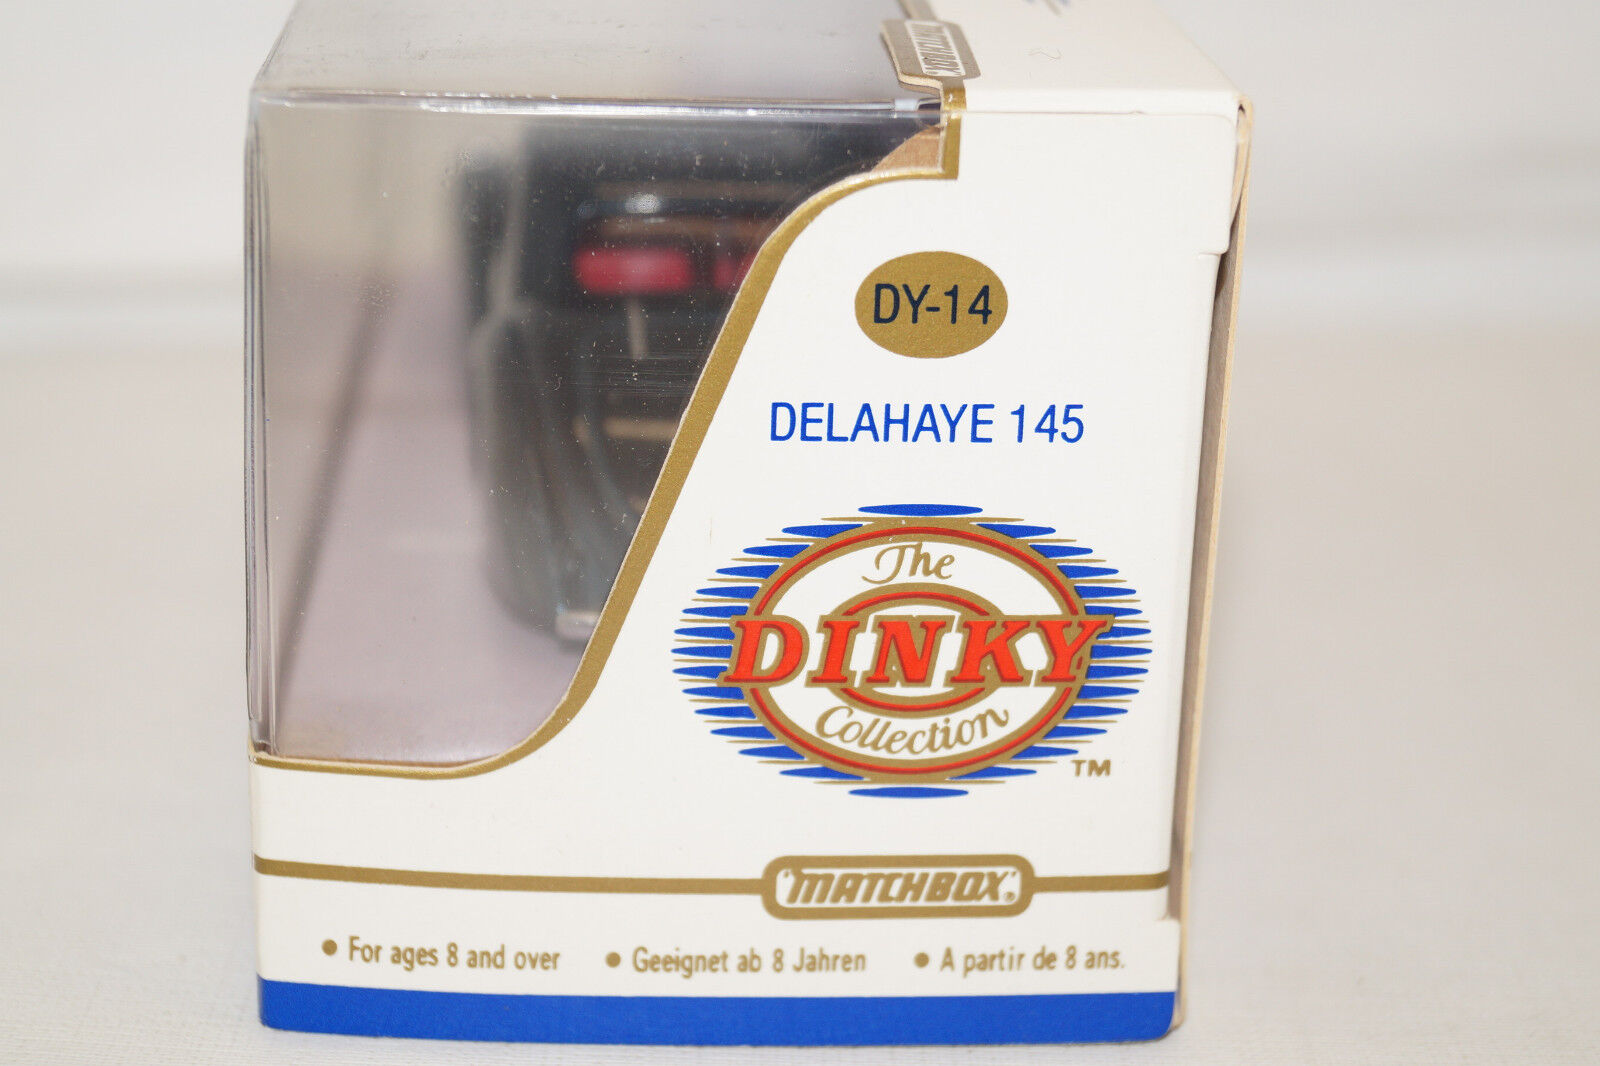 Dinky Collection DY-14 Delahaye 145 anthrazit anthrazit anthrazit 1 43 Matchbox 3a7d5e